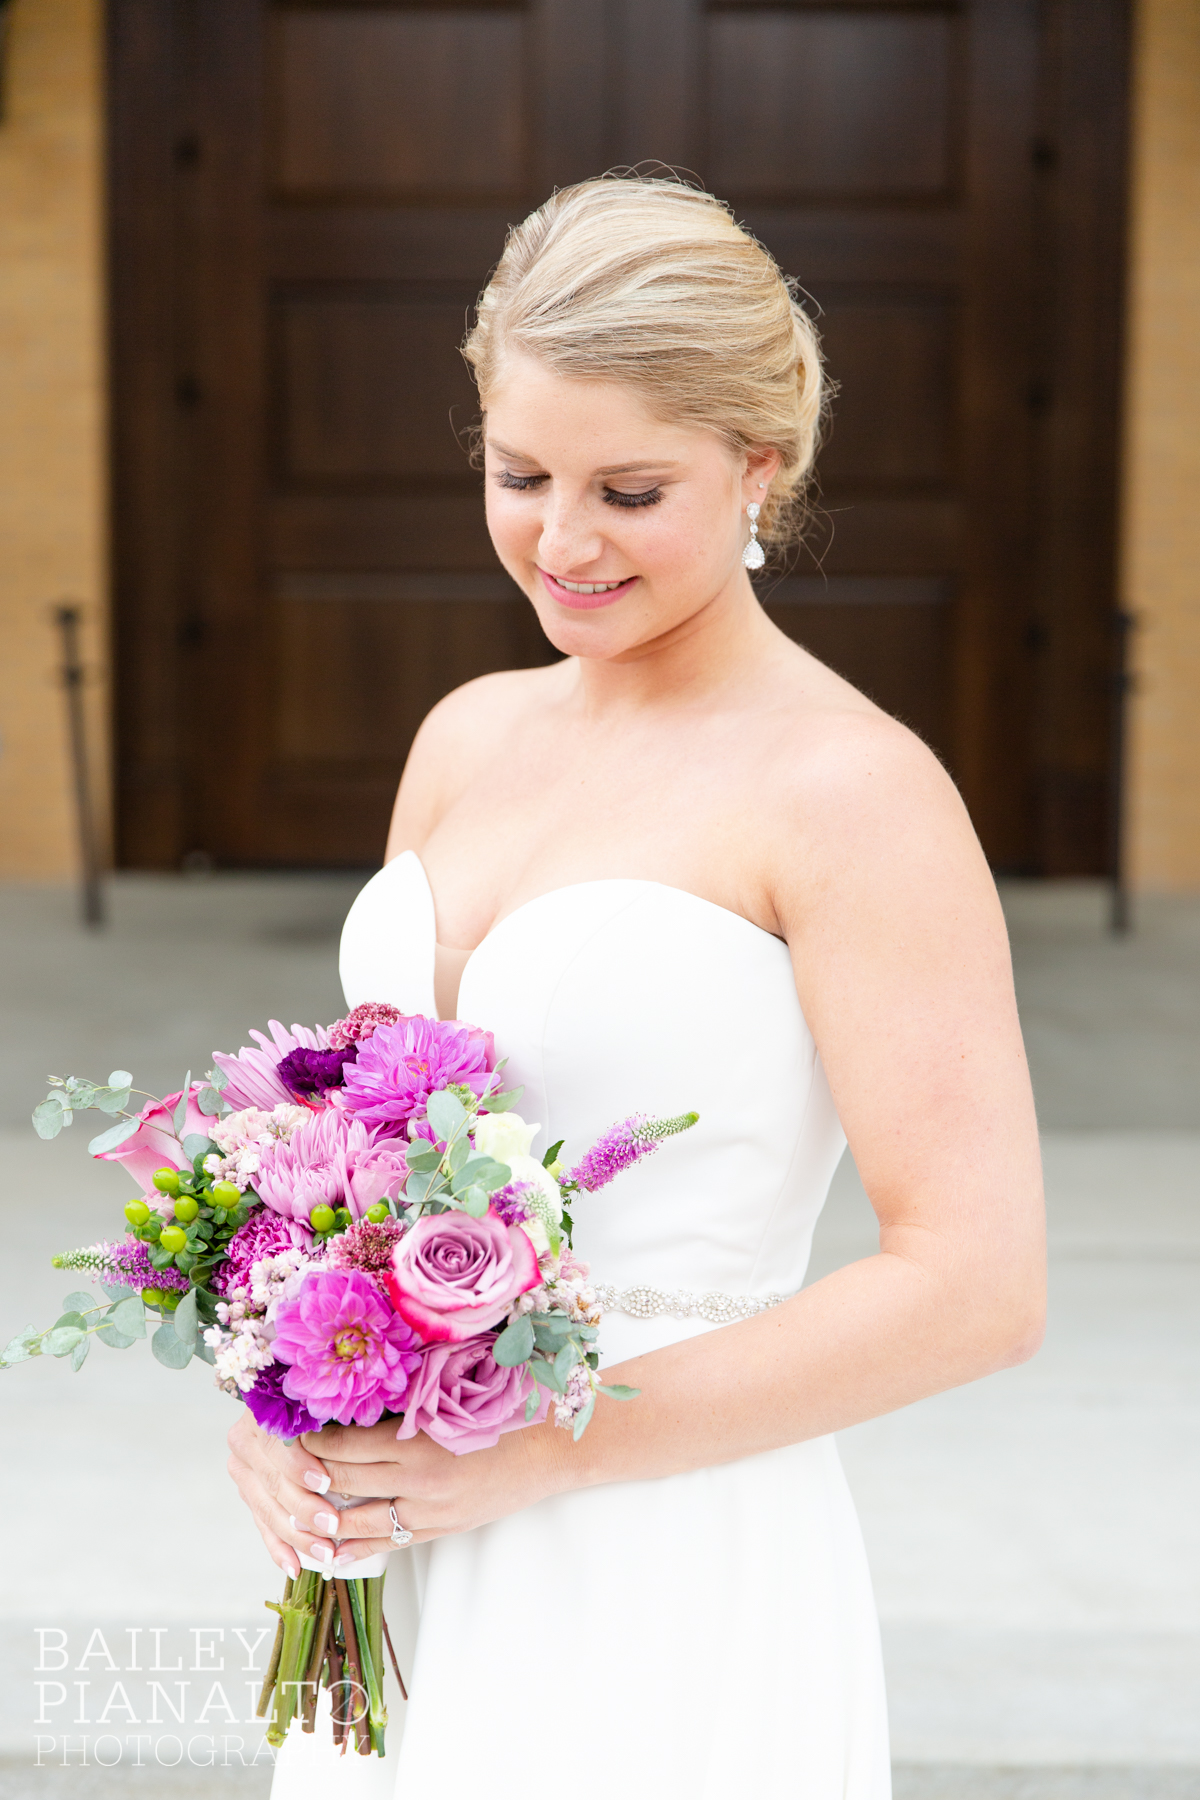 Elegant Lilac & Green Spring Wedding Inspiration with planner - As You Wish KC, gown - Belle Vogue Bridal, flowers - Lily Floral Designs, catholic church ceremony - St. Michael the Archangel, venue - Embassy Suites Olathe |  Kansas City, MO